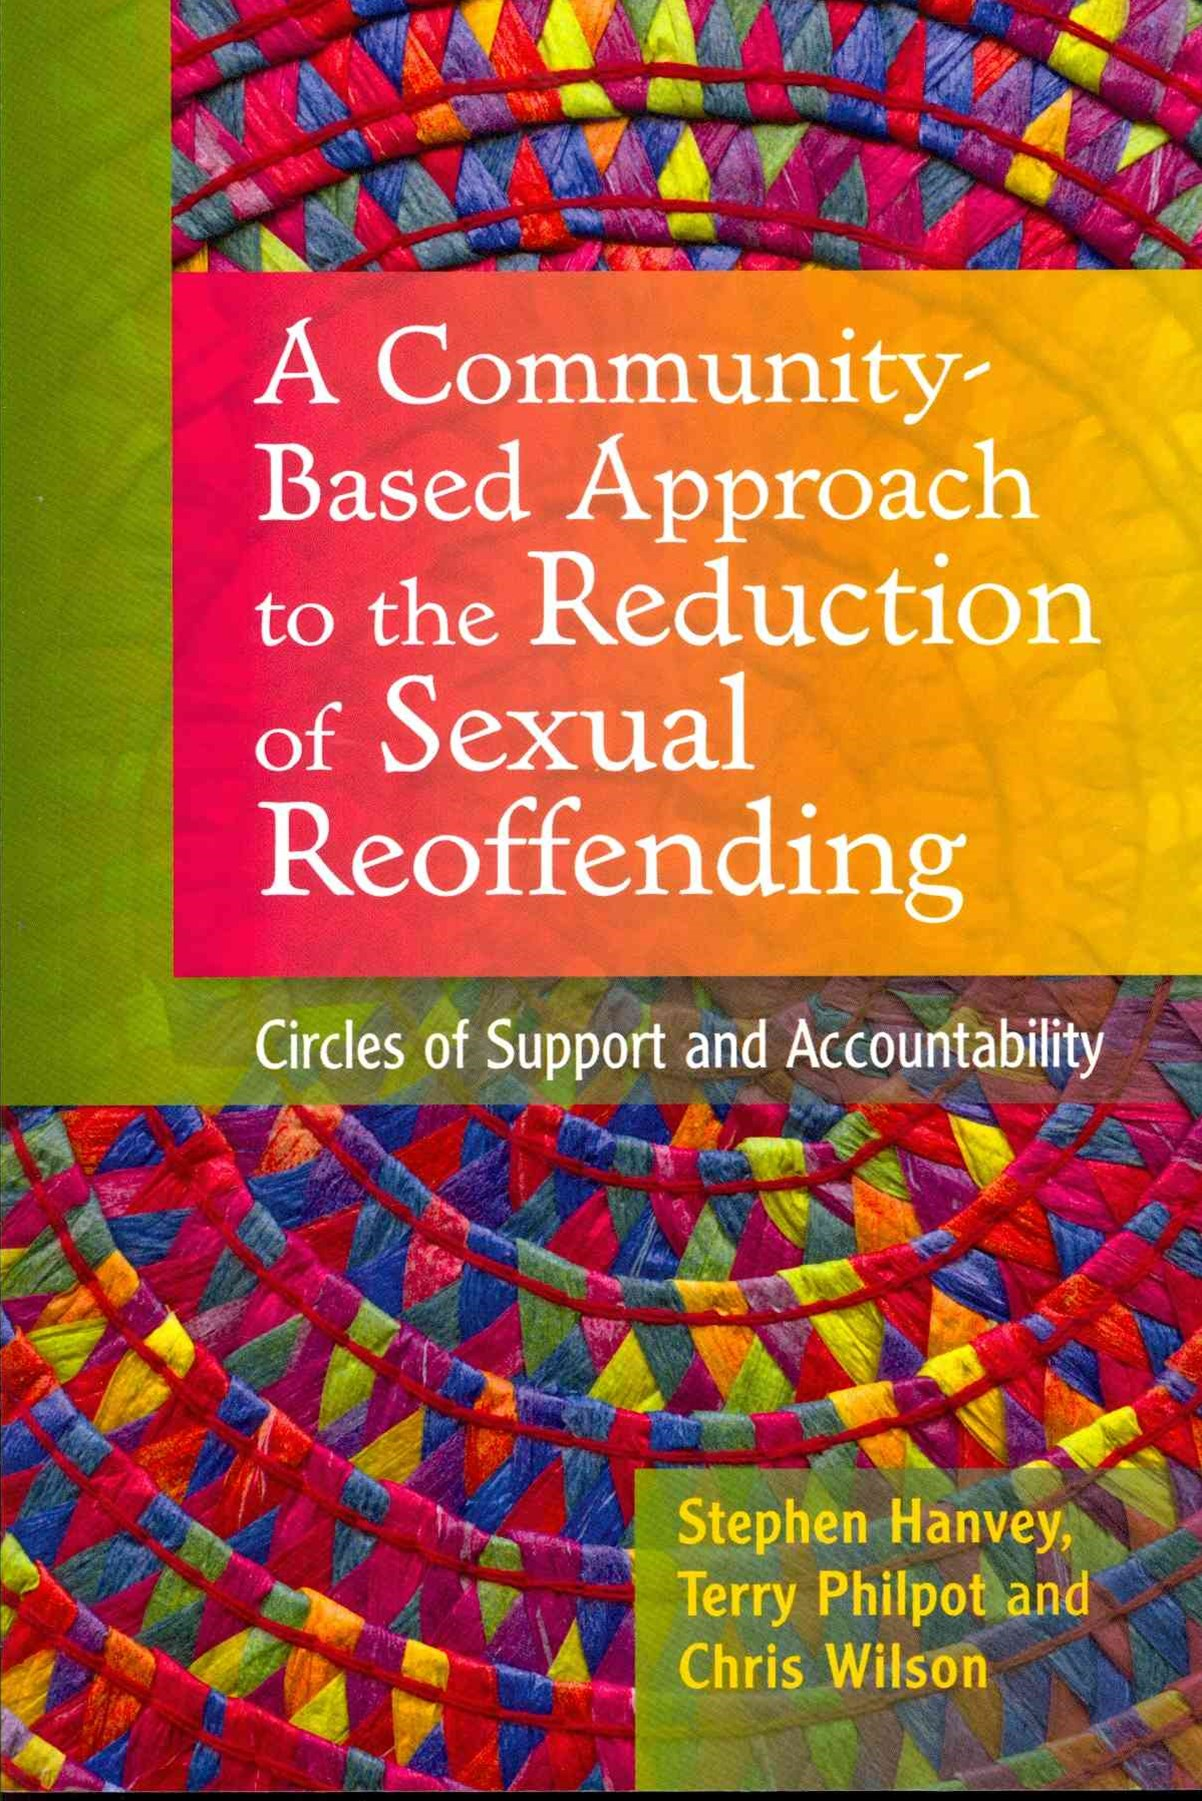 Community-based Approach to the Reduction of Sexual Reoffending